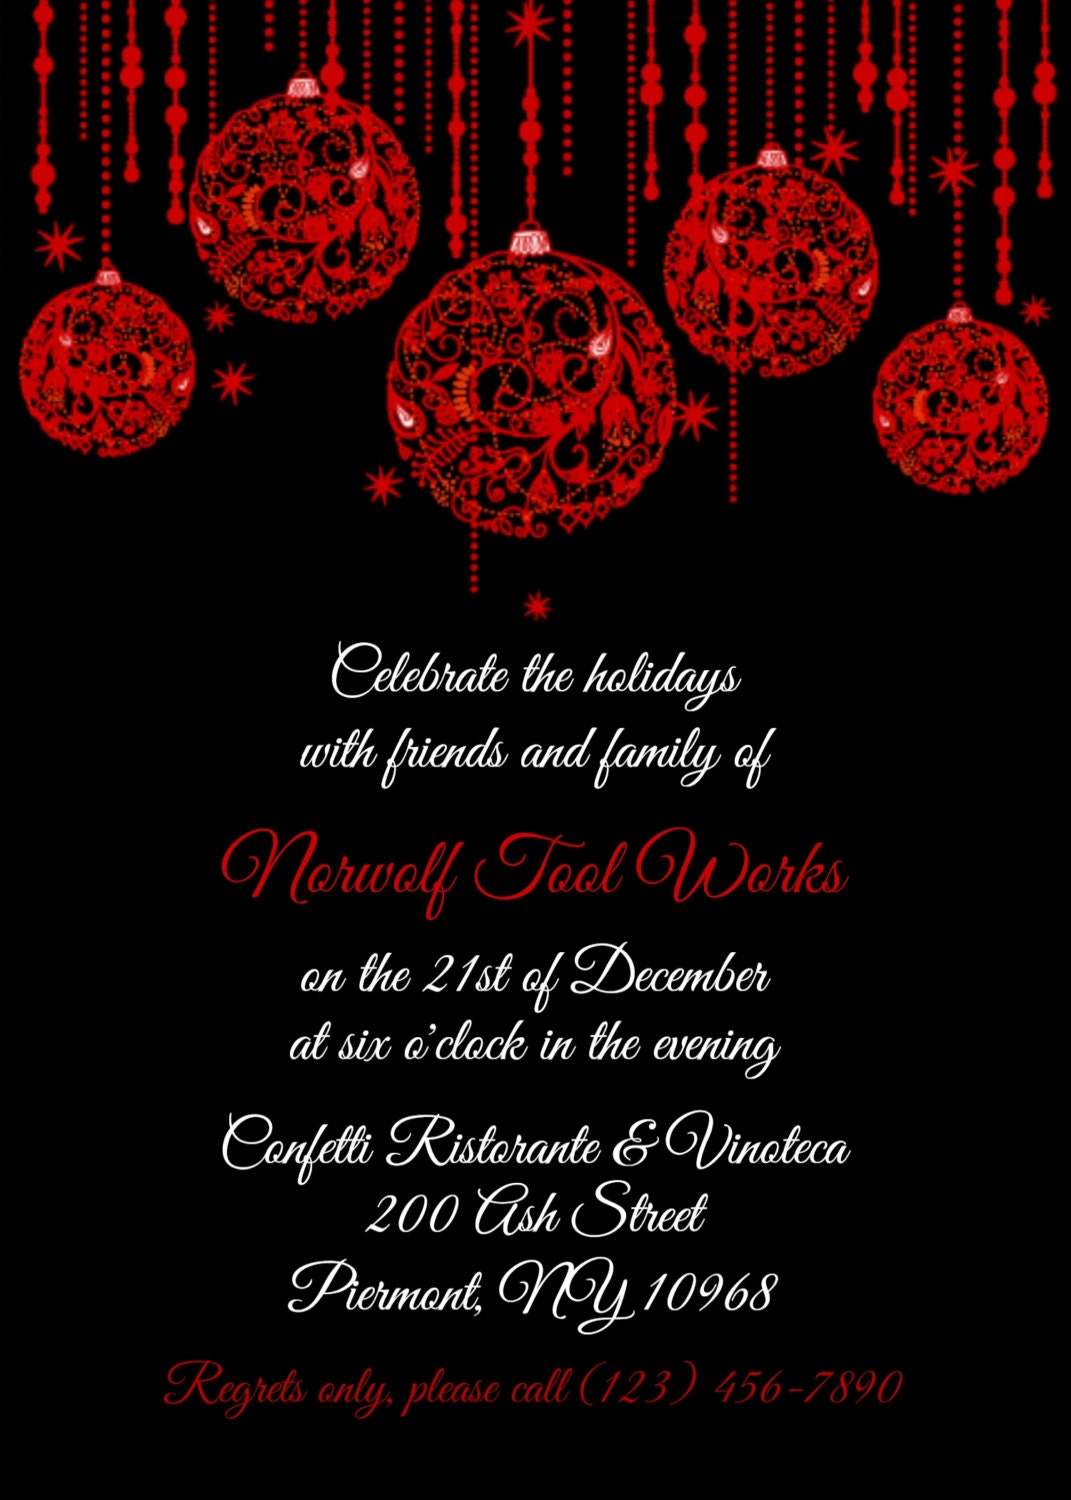 Office Christmas Party Invitation Templates. Christmas Party ...